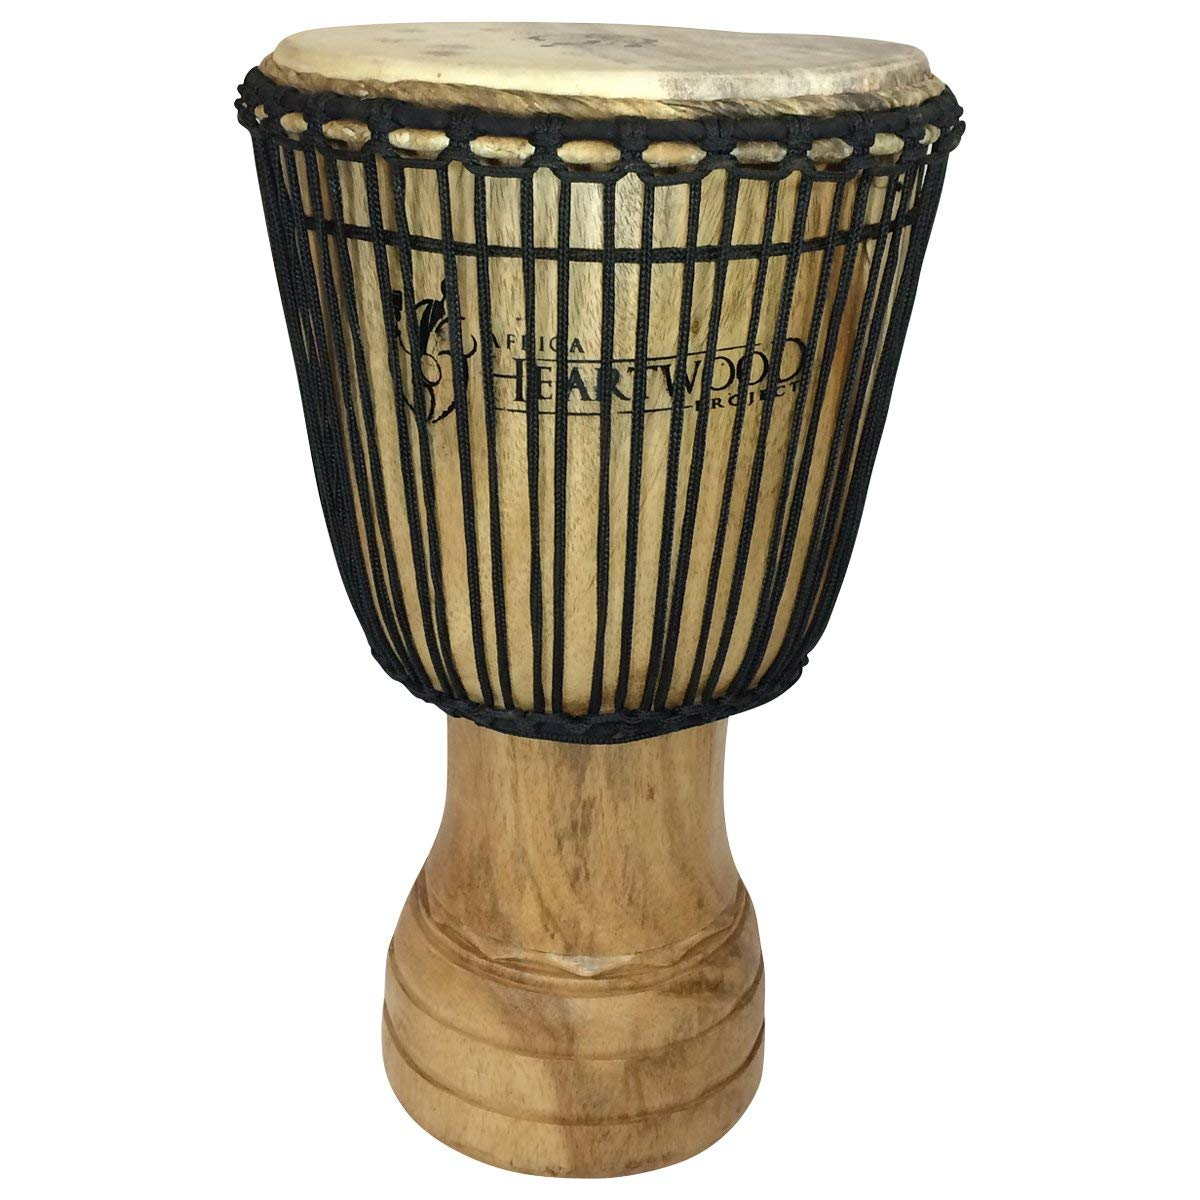 Hand-carved Djembe Drum From Africa - 13''x24'' Classic Ghana Djembe (Fingerprint Carving) by Africa Heartwood Project